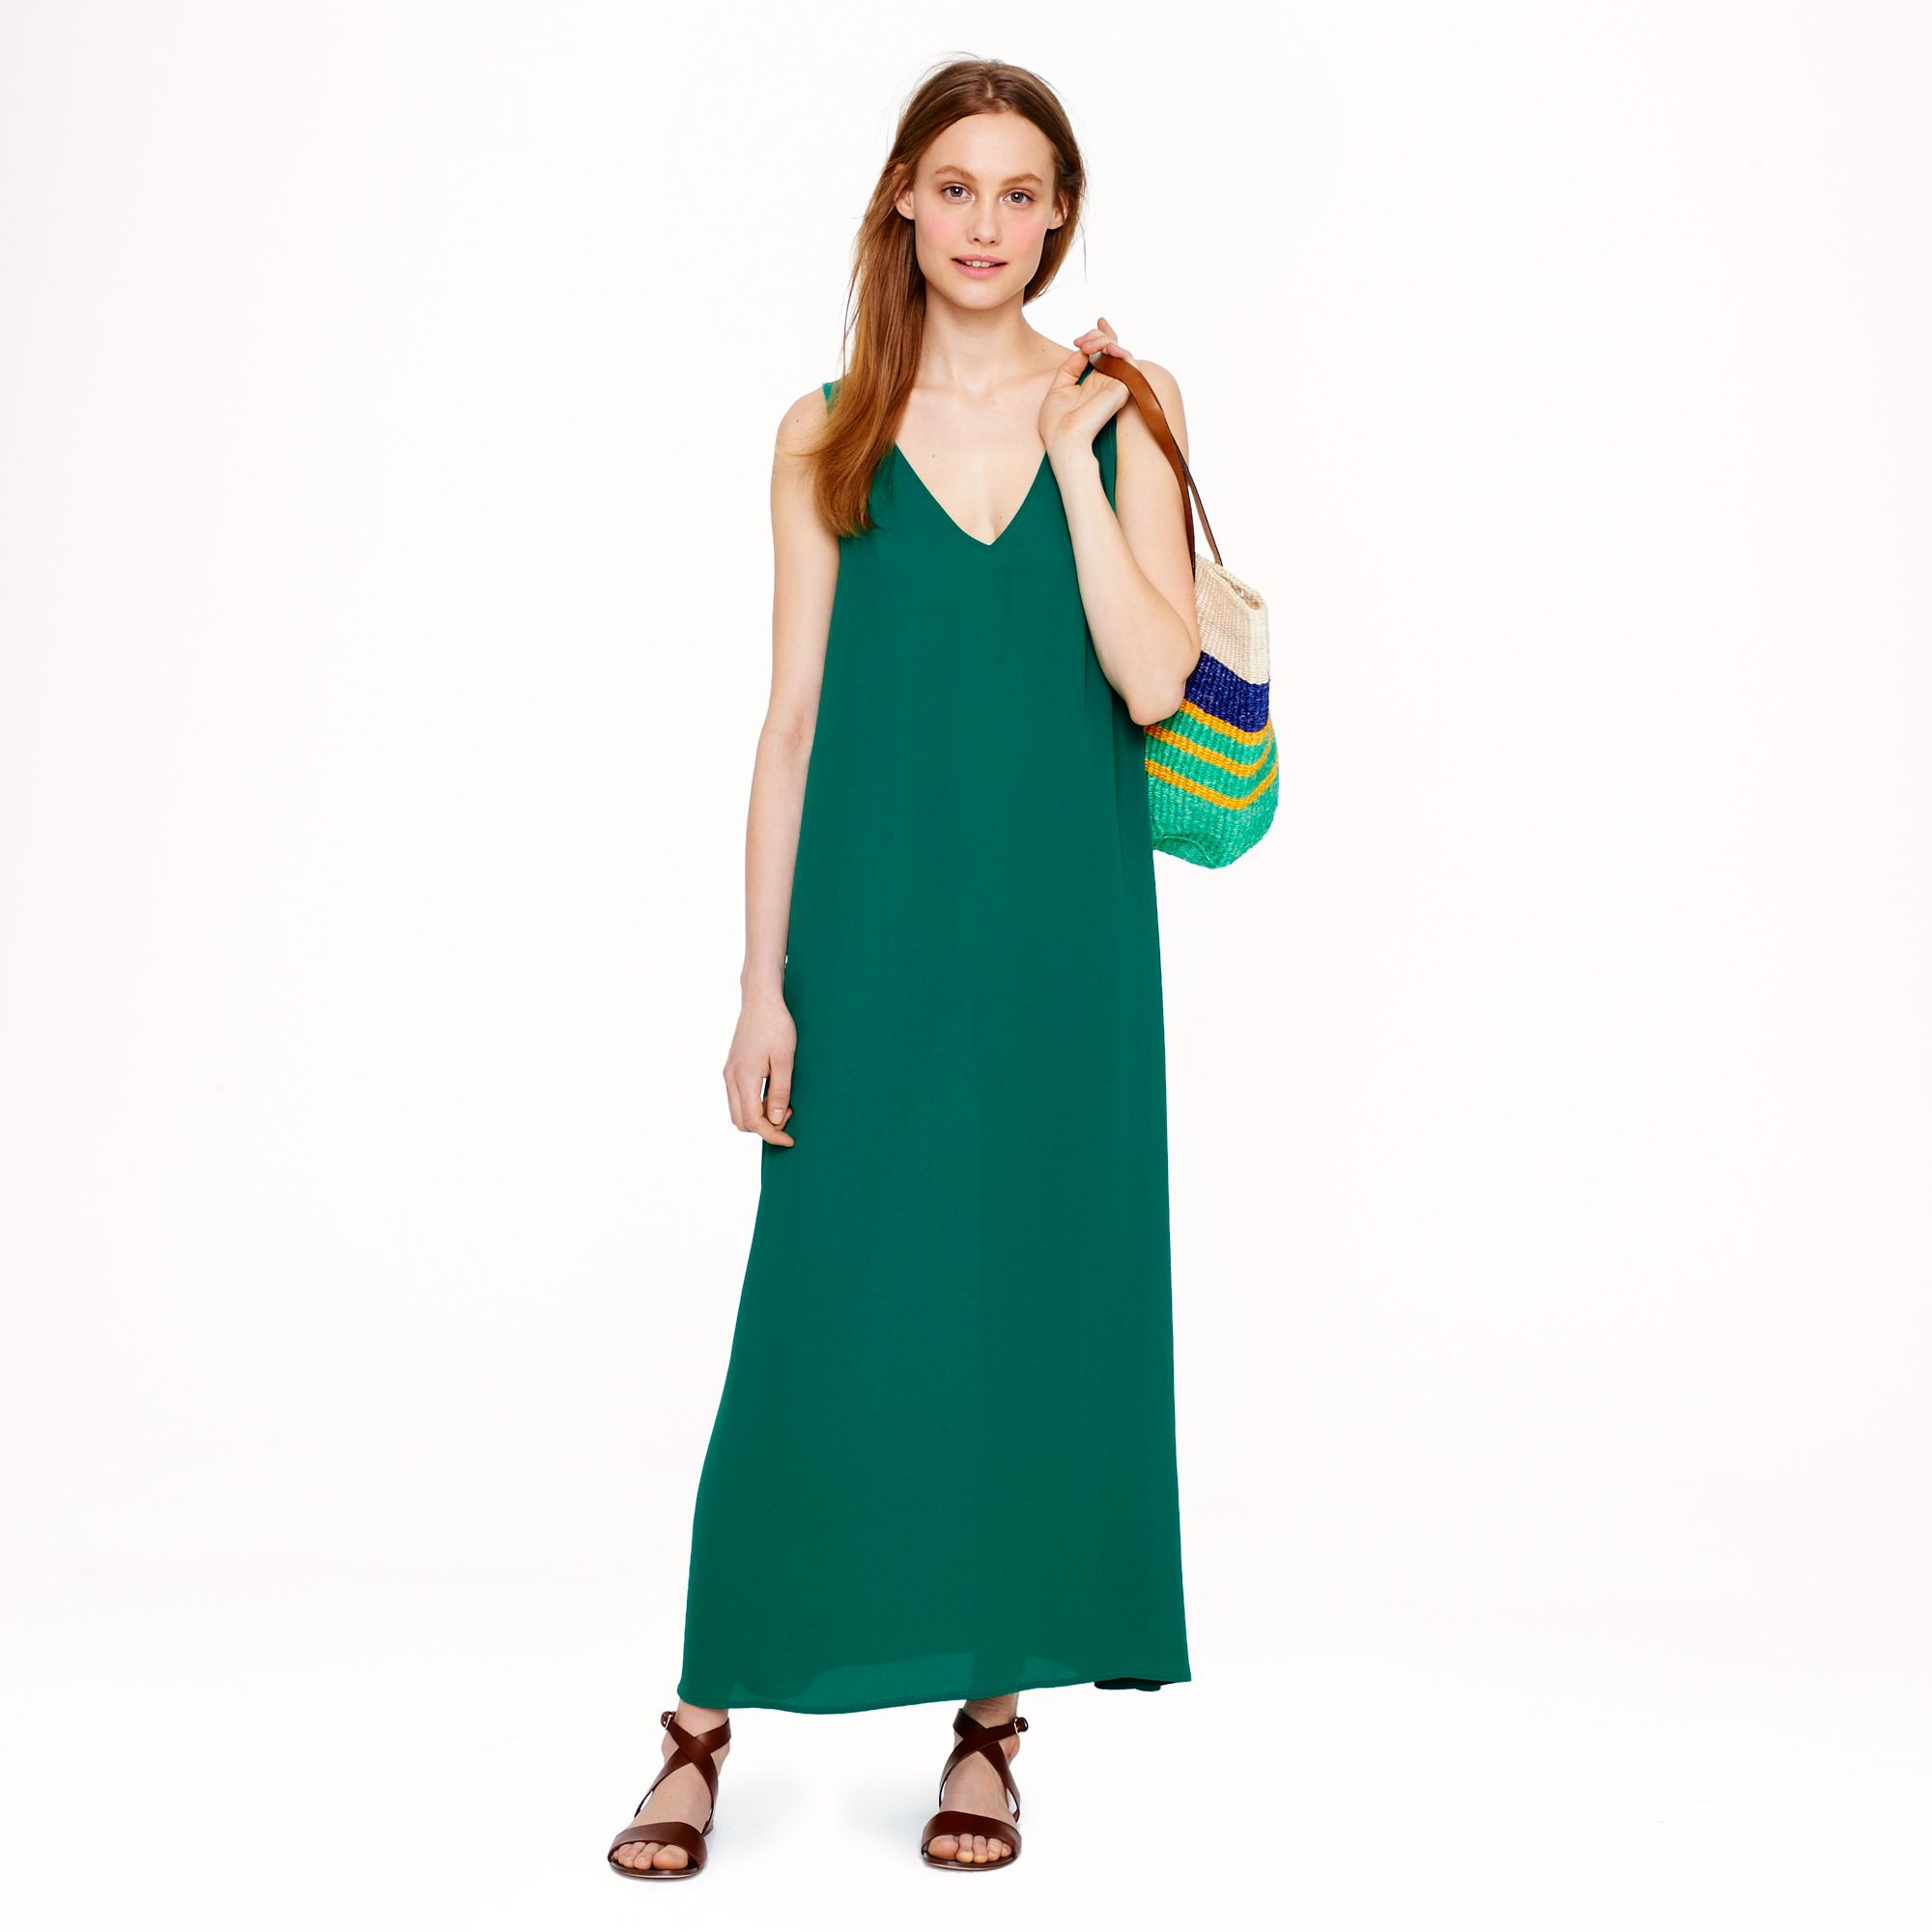 maxi dress on short person 1974